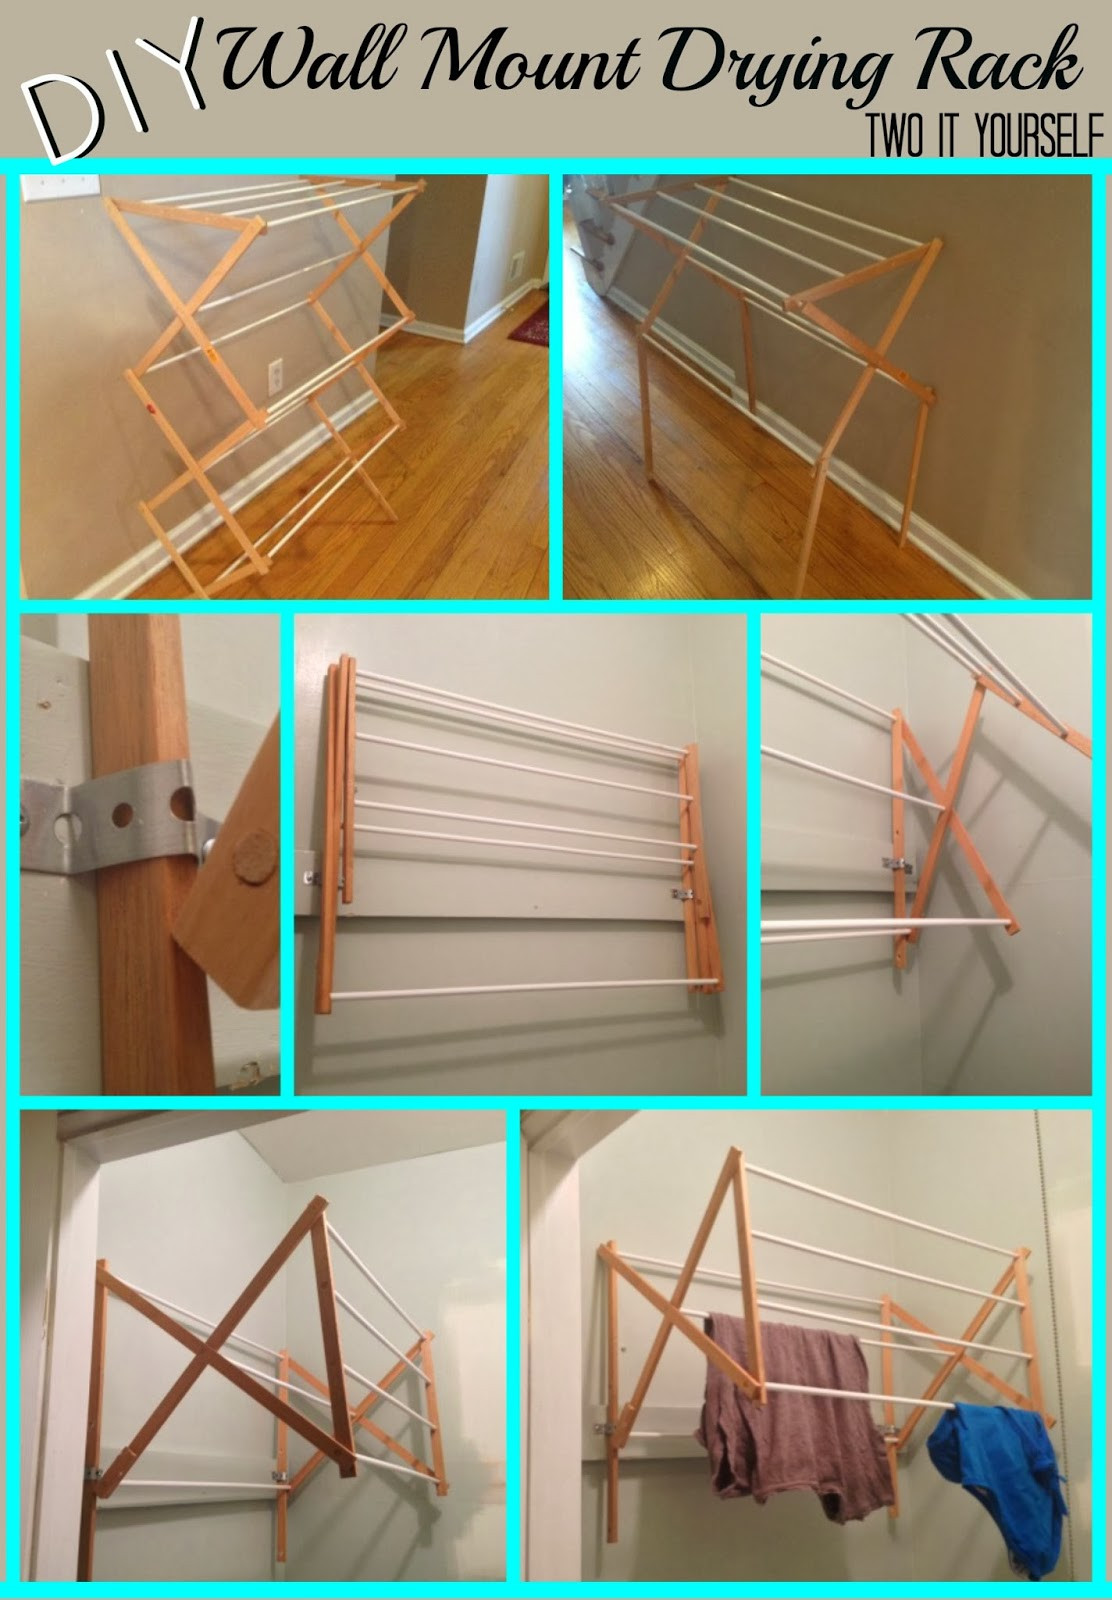 DIY Clothes Drying Rack  Two It Yourself DIY Laundry Drying Rack Wall Mount from